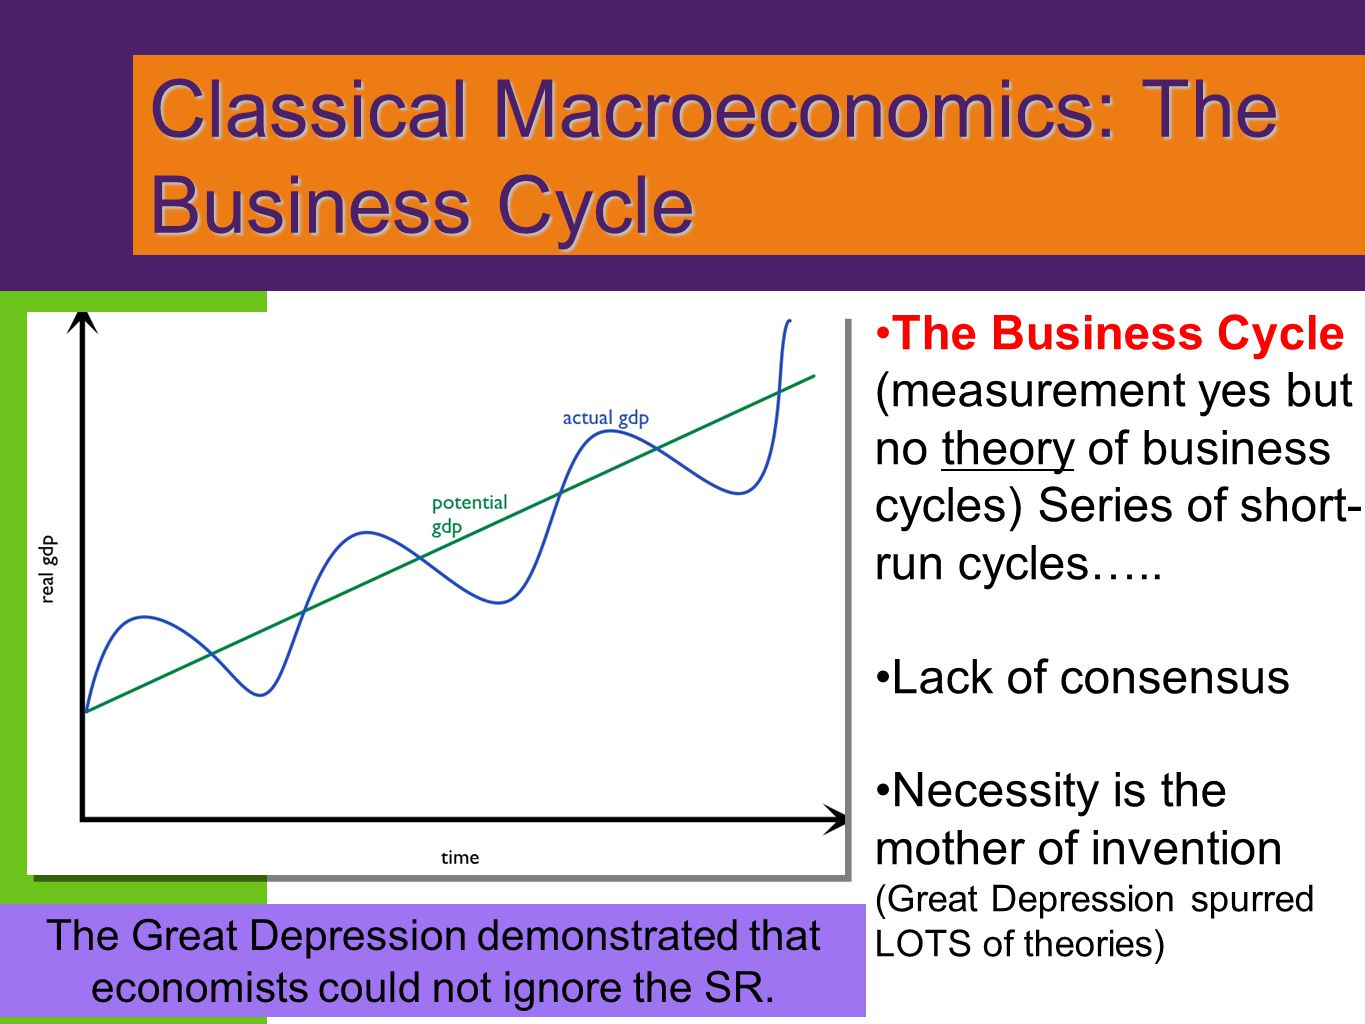 Classical Macroeconomics: The Business Cycle